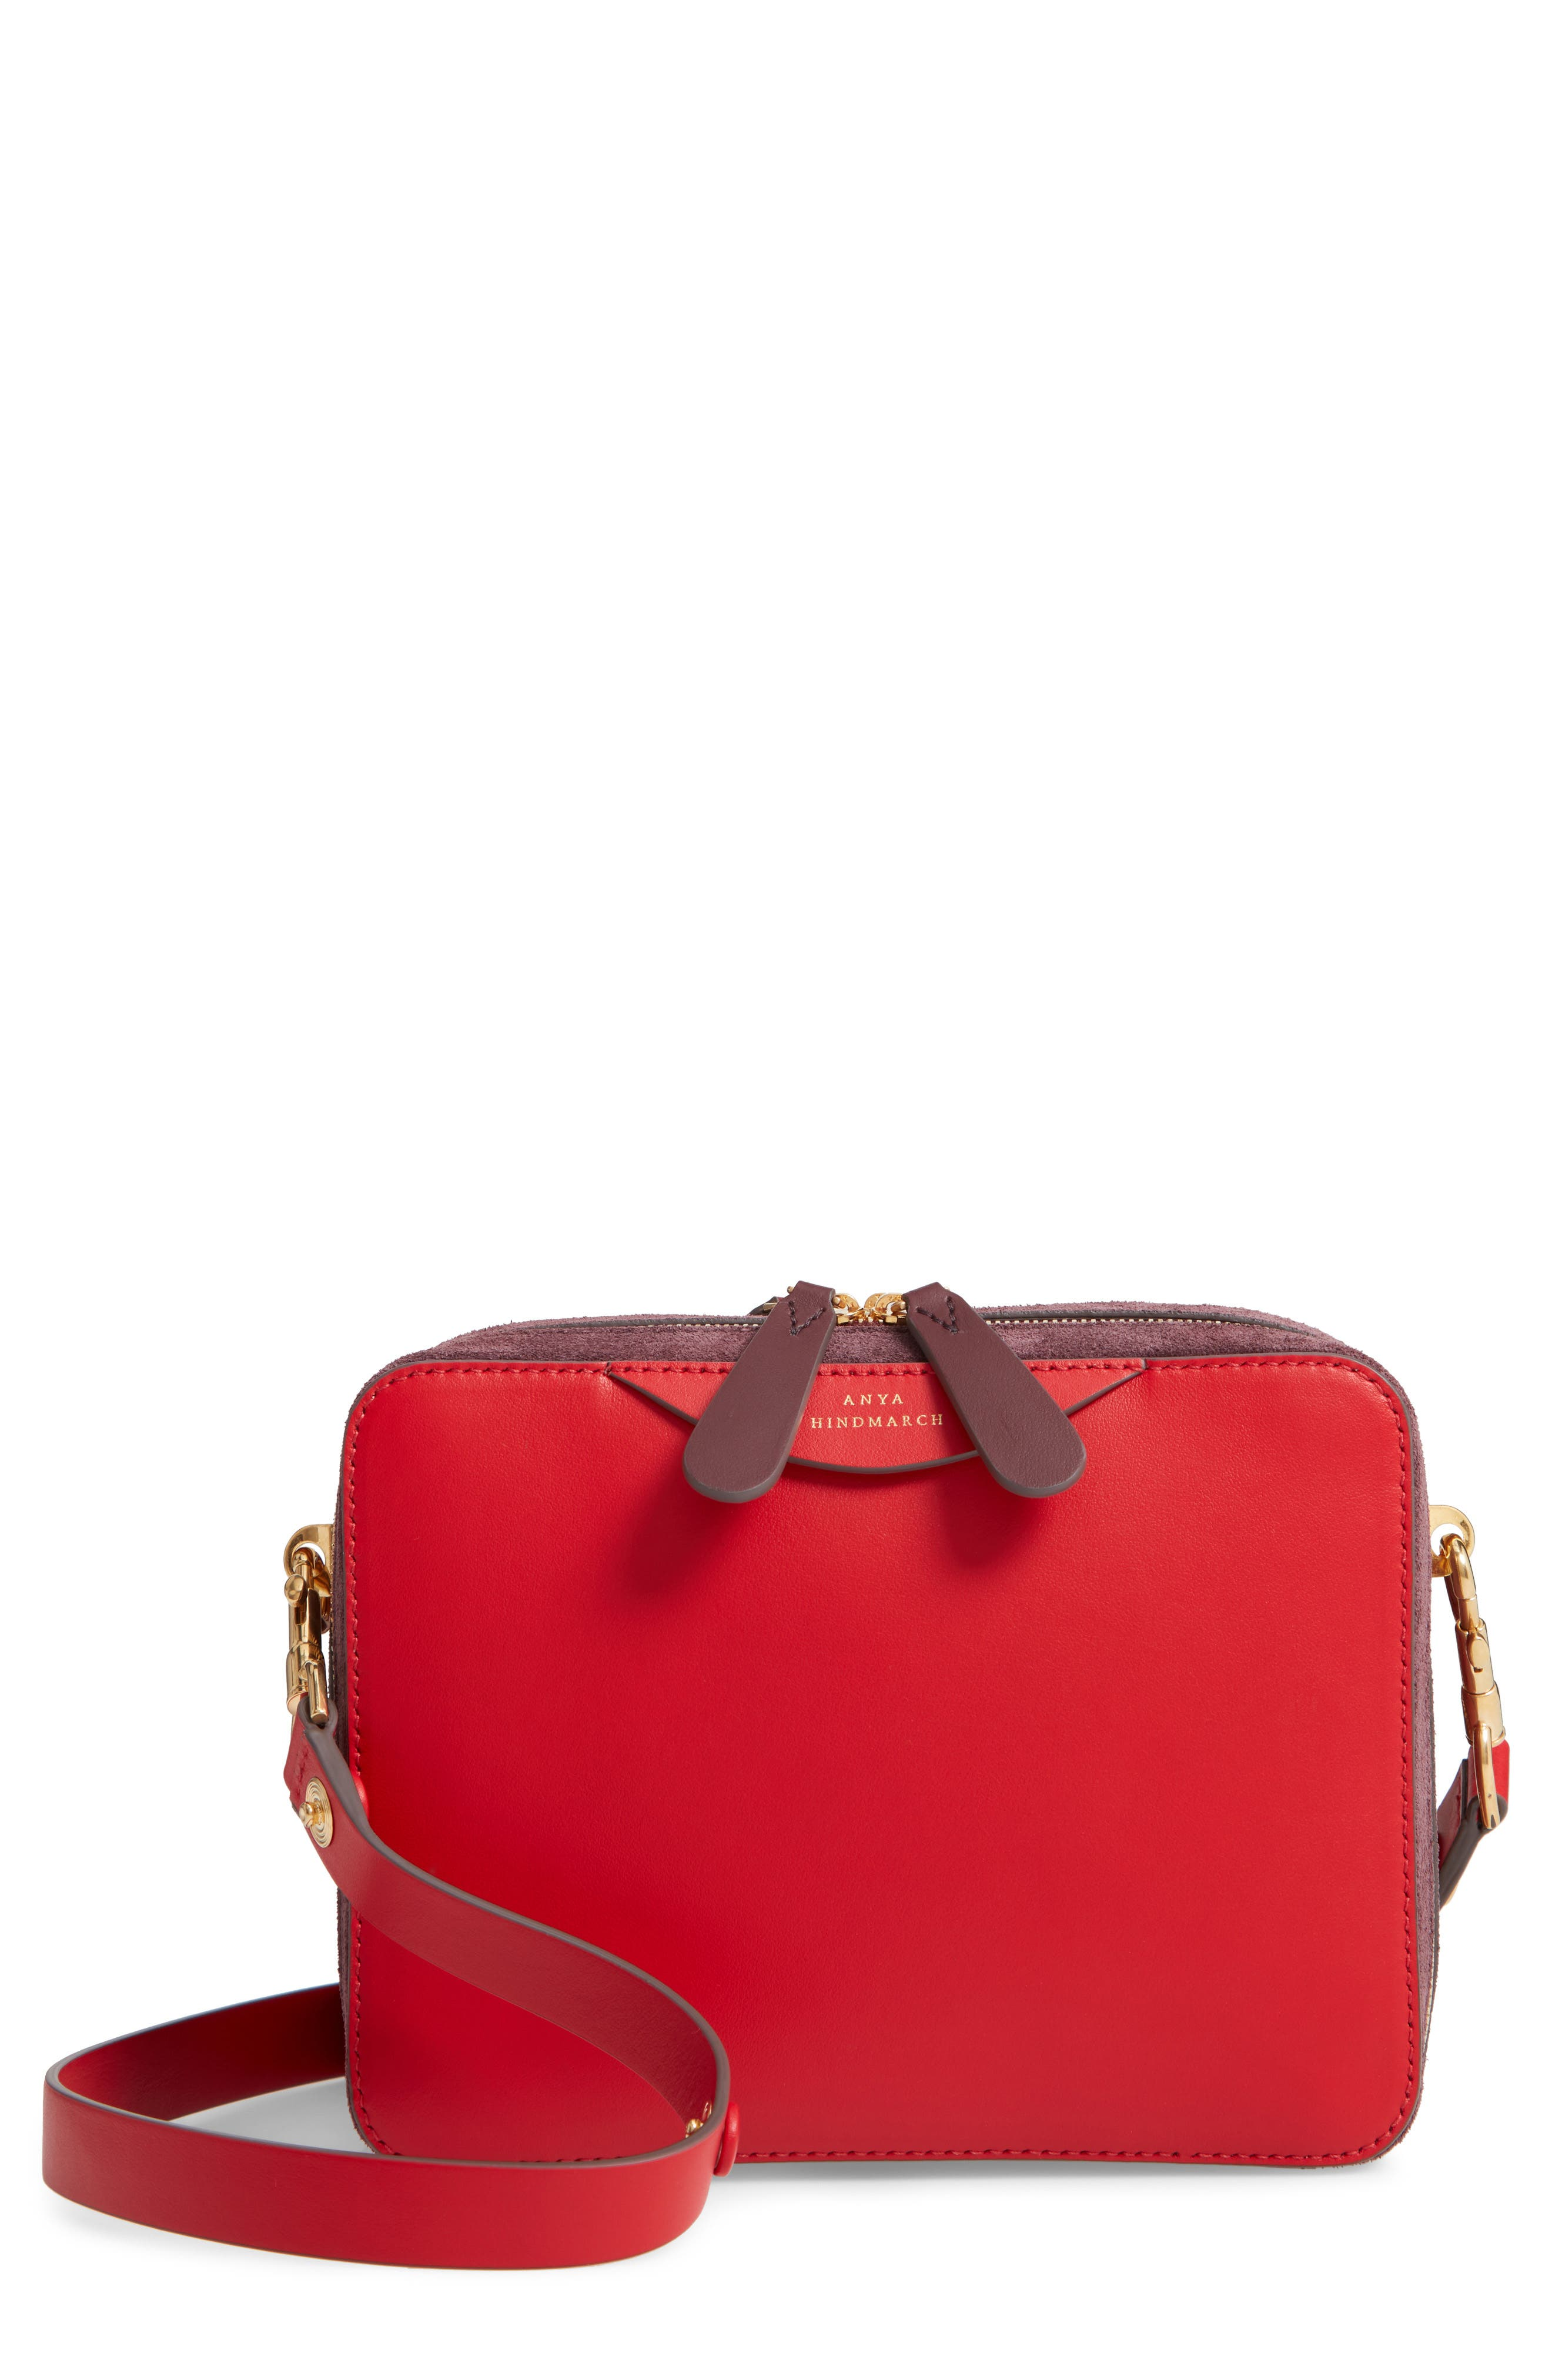 The Double Stack Leather Crossbody Bag,                             Main thumbnail 1, color,                             BRIGHT RED/ OXBLOOD